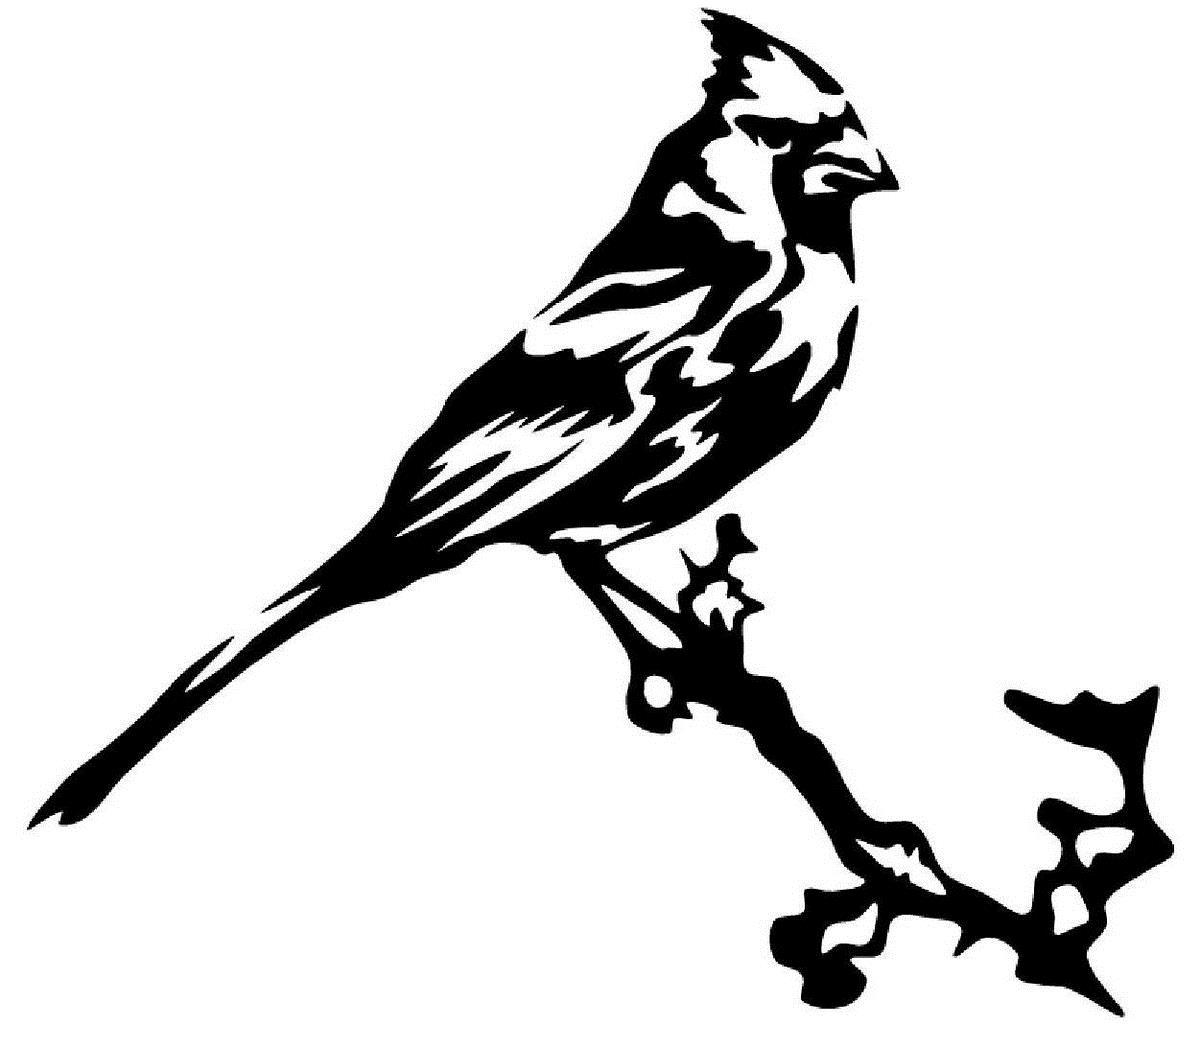 2019 car styling for cardinal bird on a branch vinyl decal sticker car window wall bumper cool animal from redchinatown 1 01 dhgate com